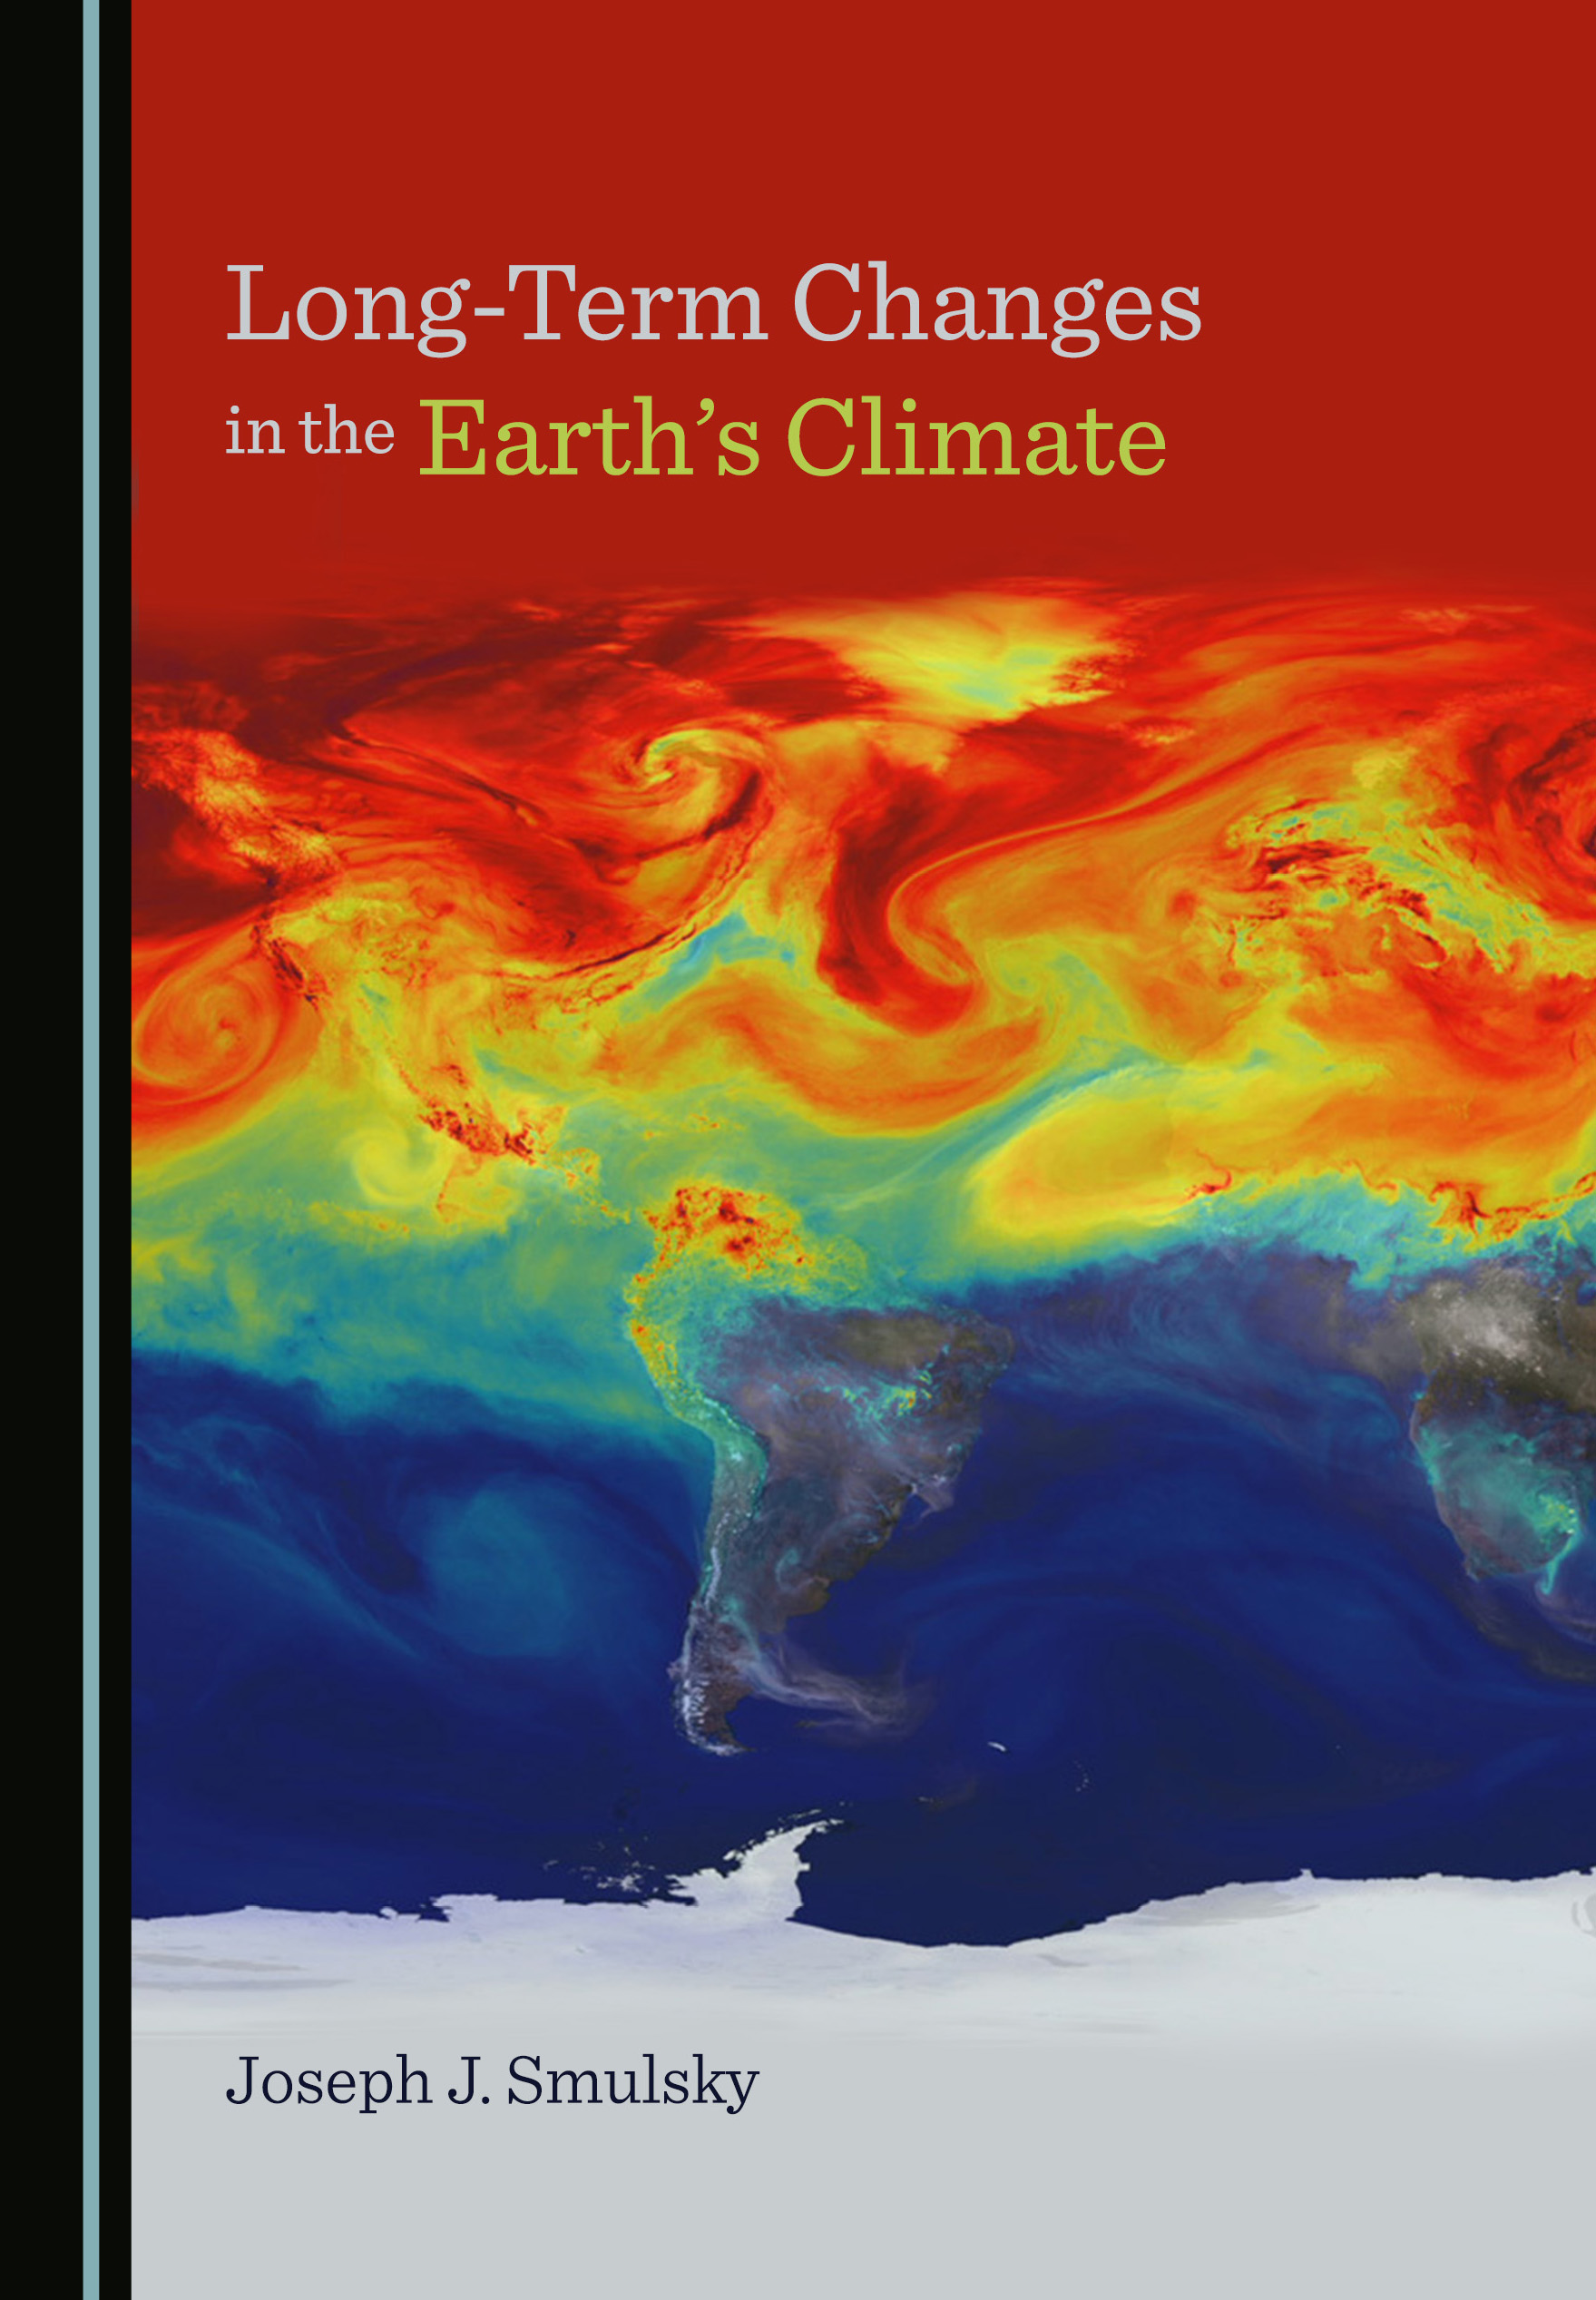 Long-Term Changes in the Earth's Climate